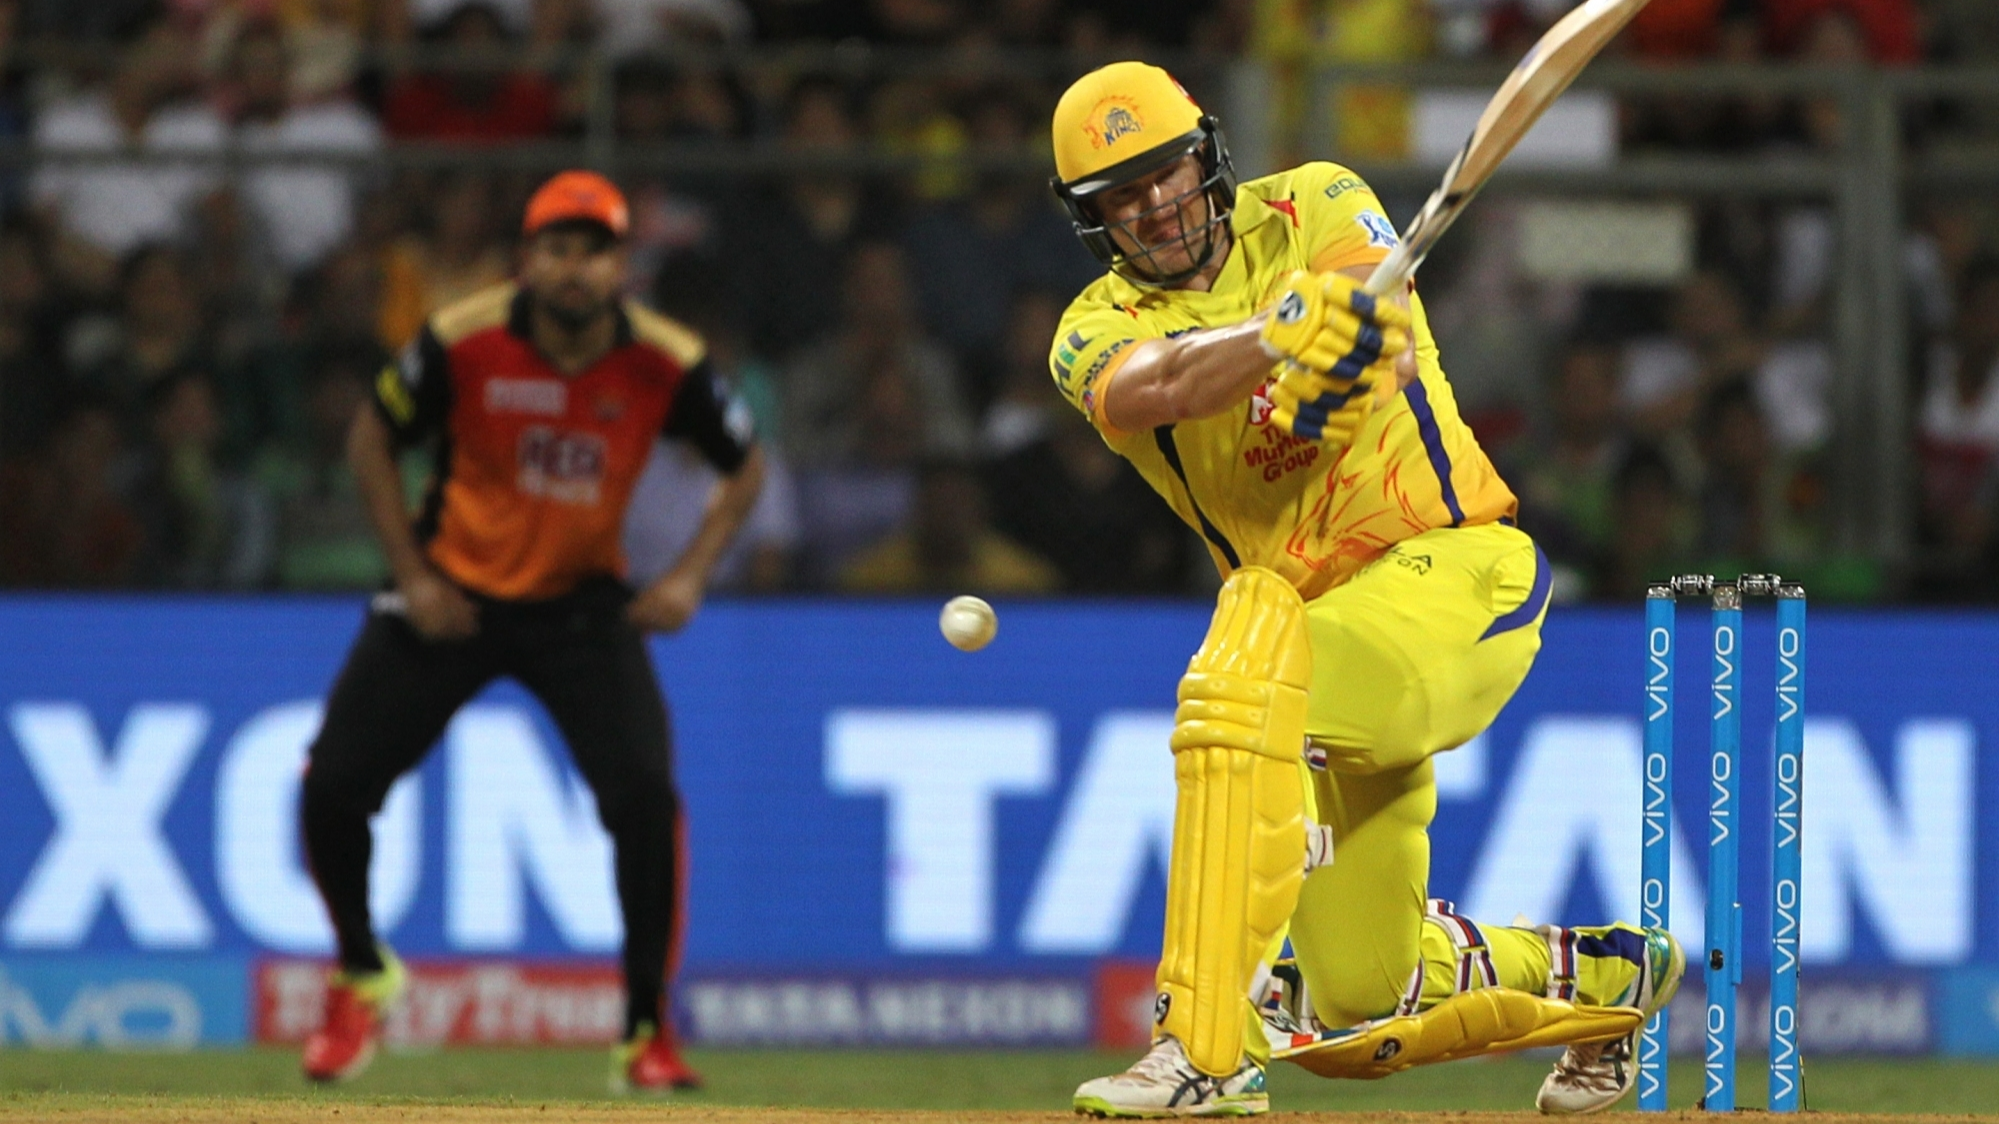 IPL 2018: CSK vs SRH – Twitter reacts in amazement as Shane Watson's dazzling 117* leads CSK to IPL 11 triumph